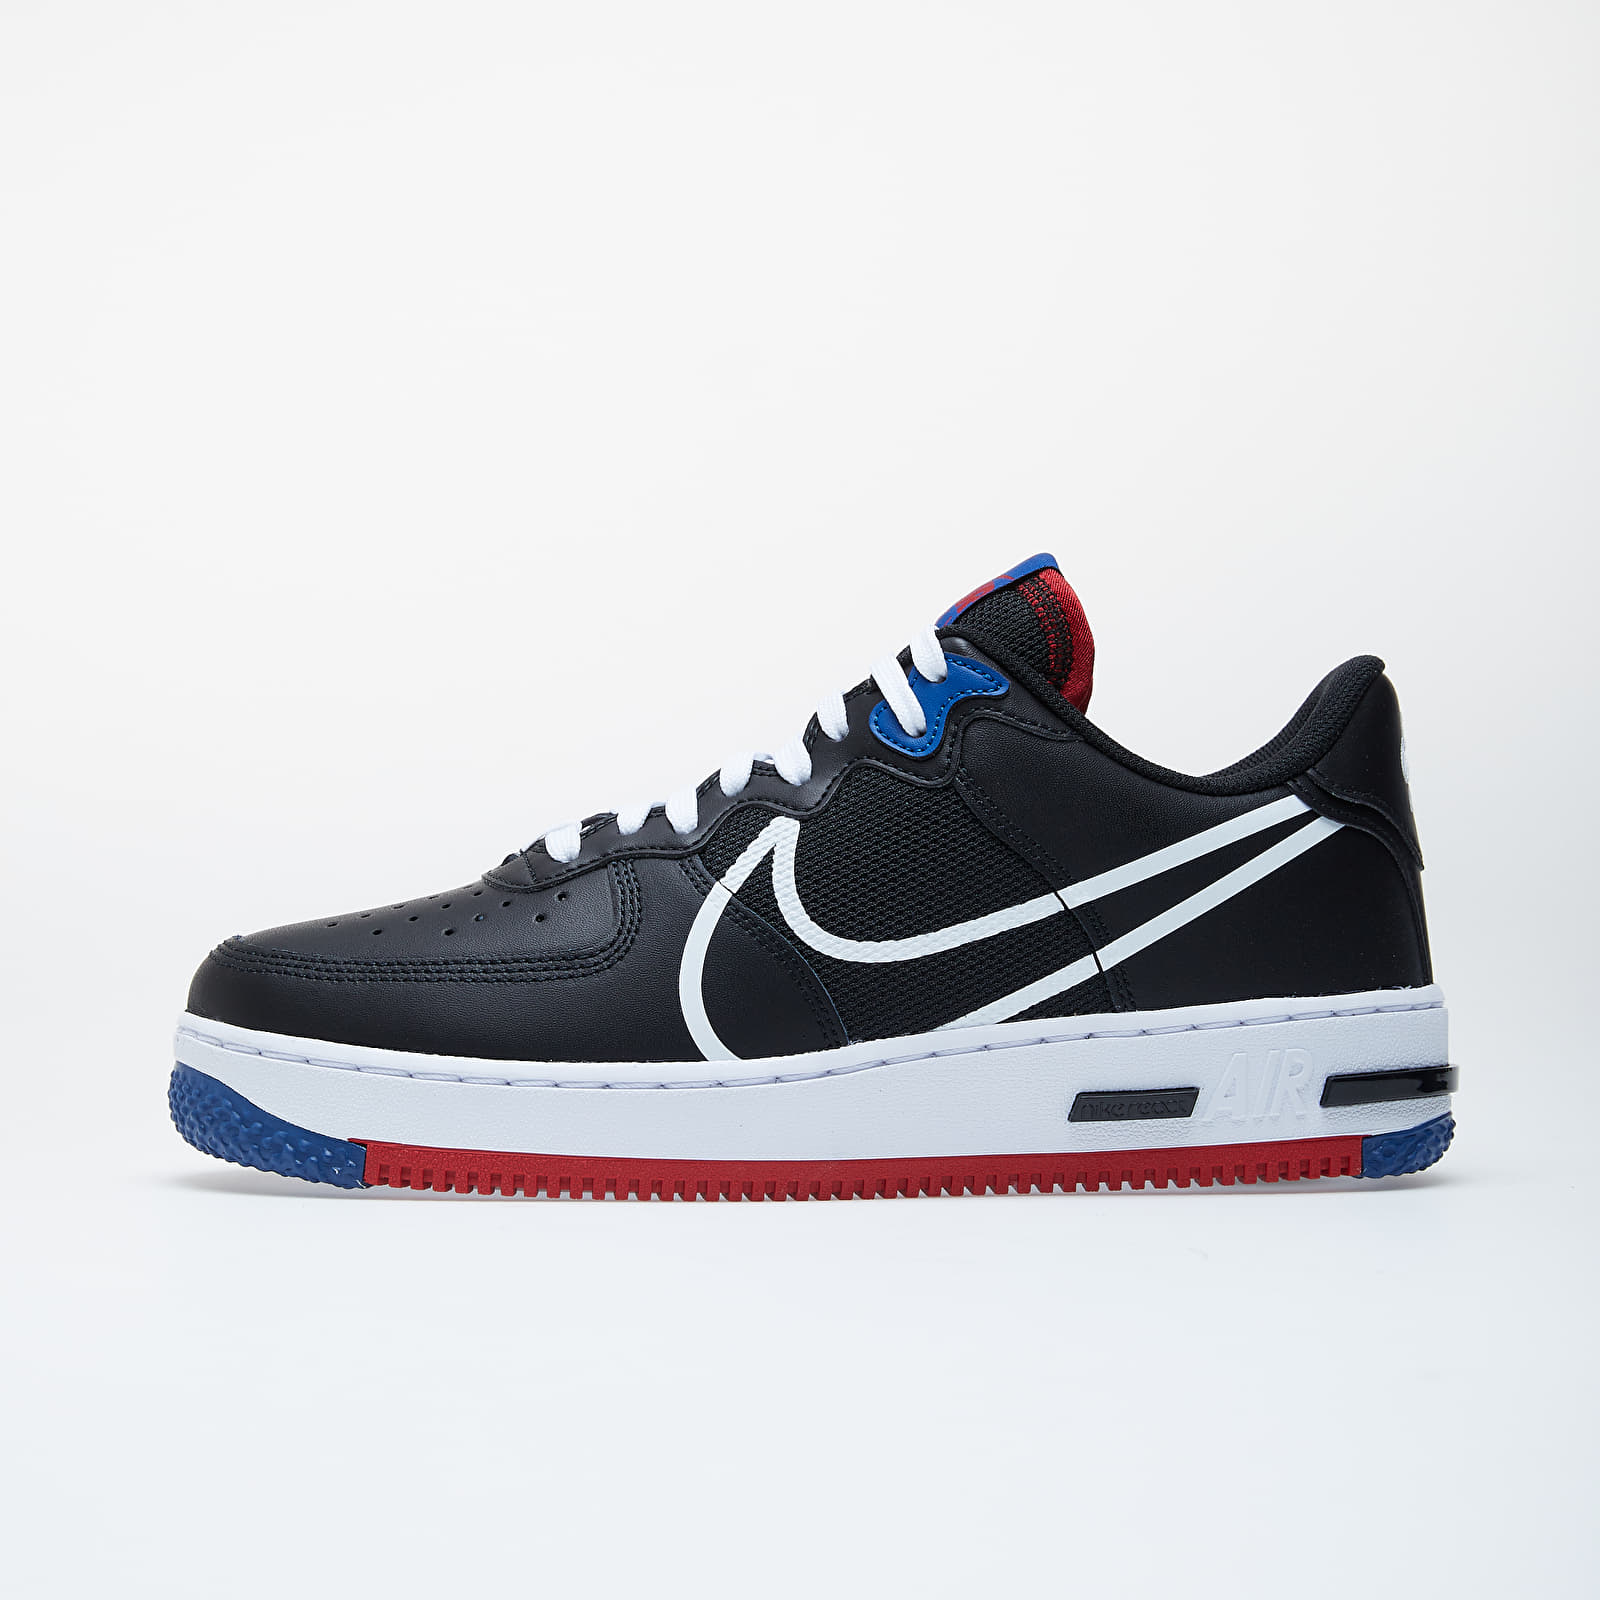 sostén Jane Austen Celsius  Men's shoes Nike Air Force 1 React Black/ White-Gym Red-Gym Blue